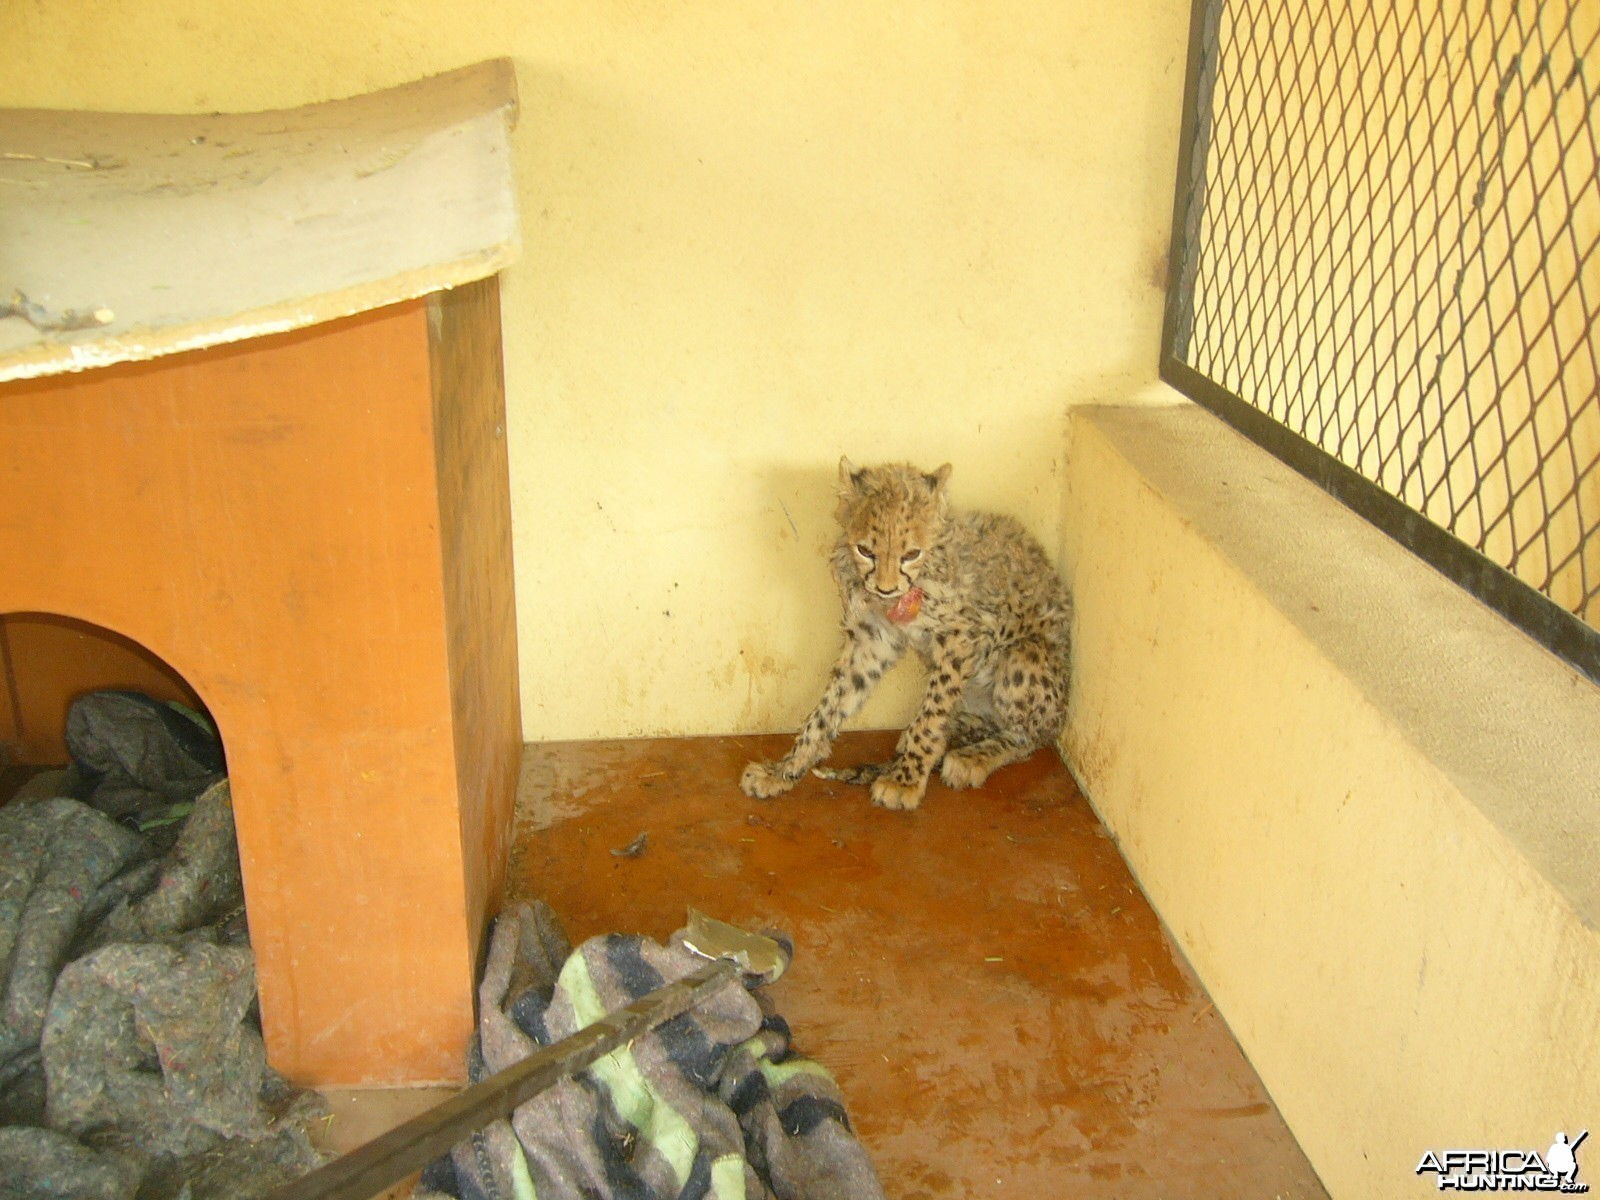 Rescued Baby Cheetah